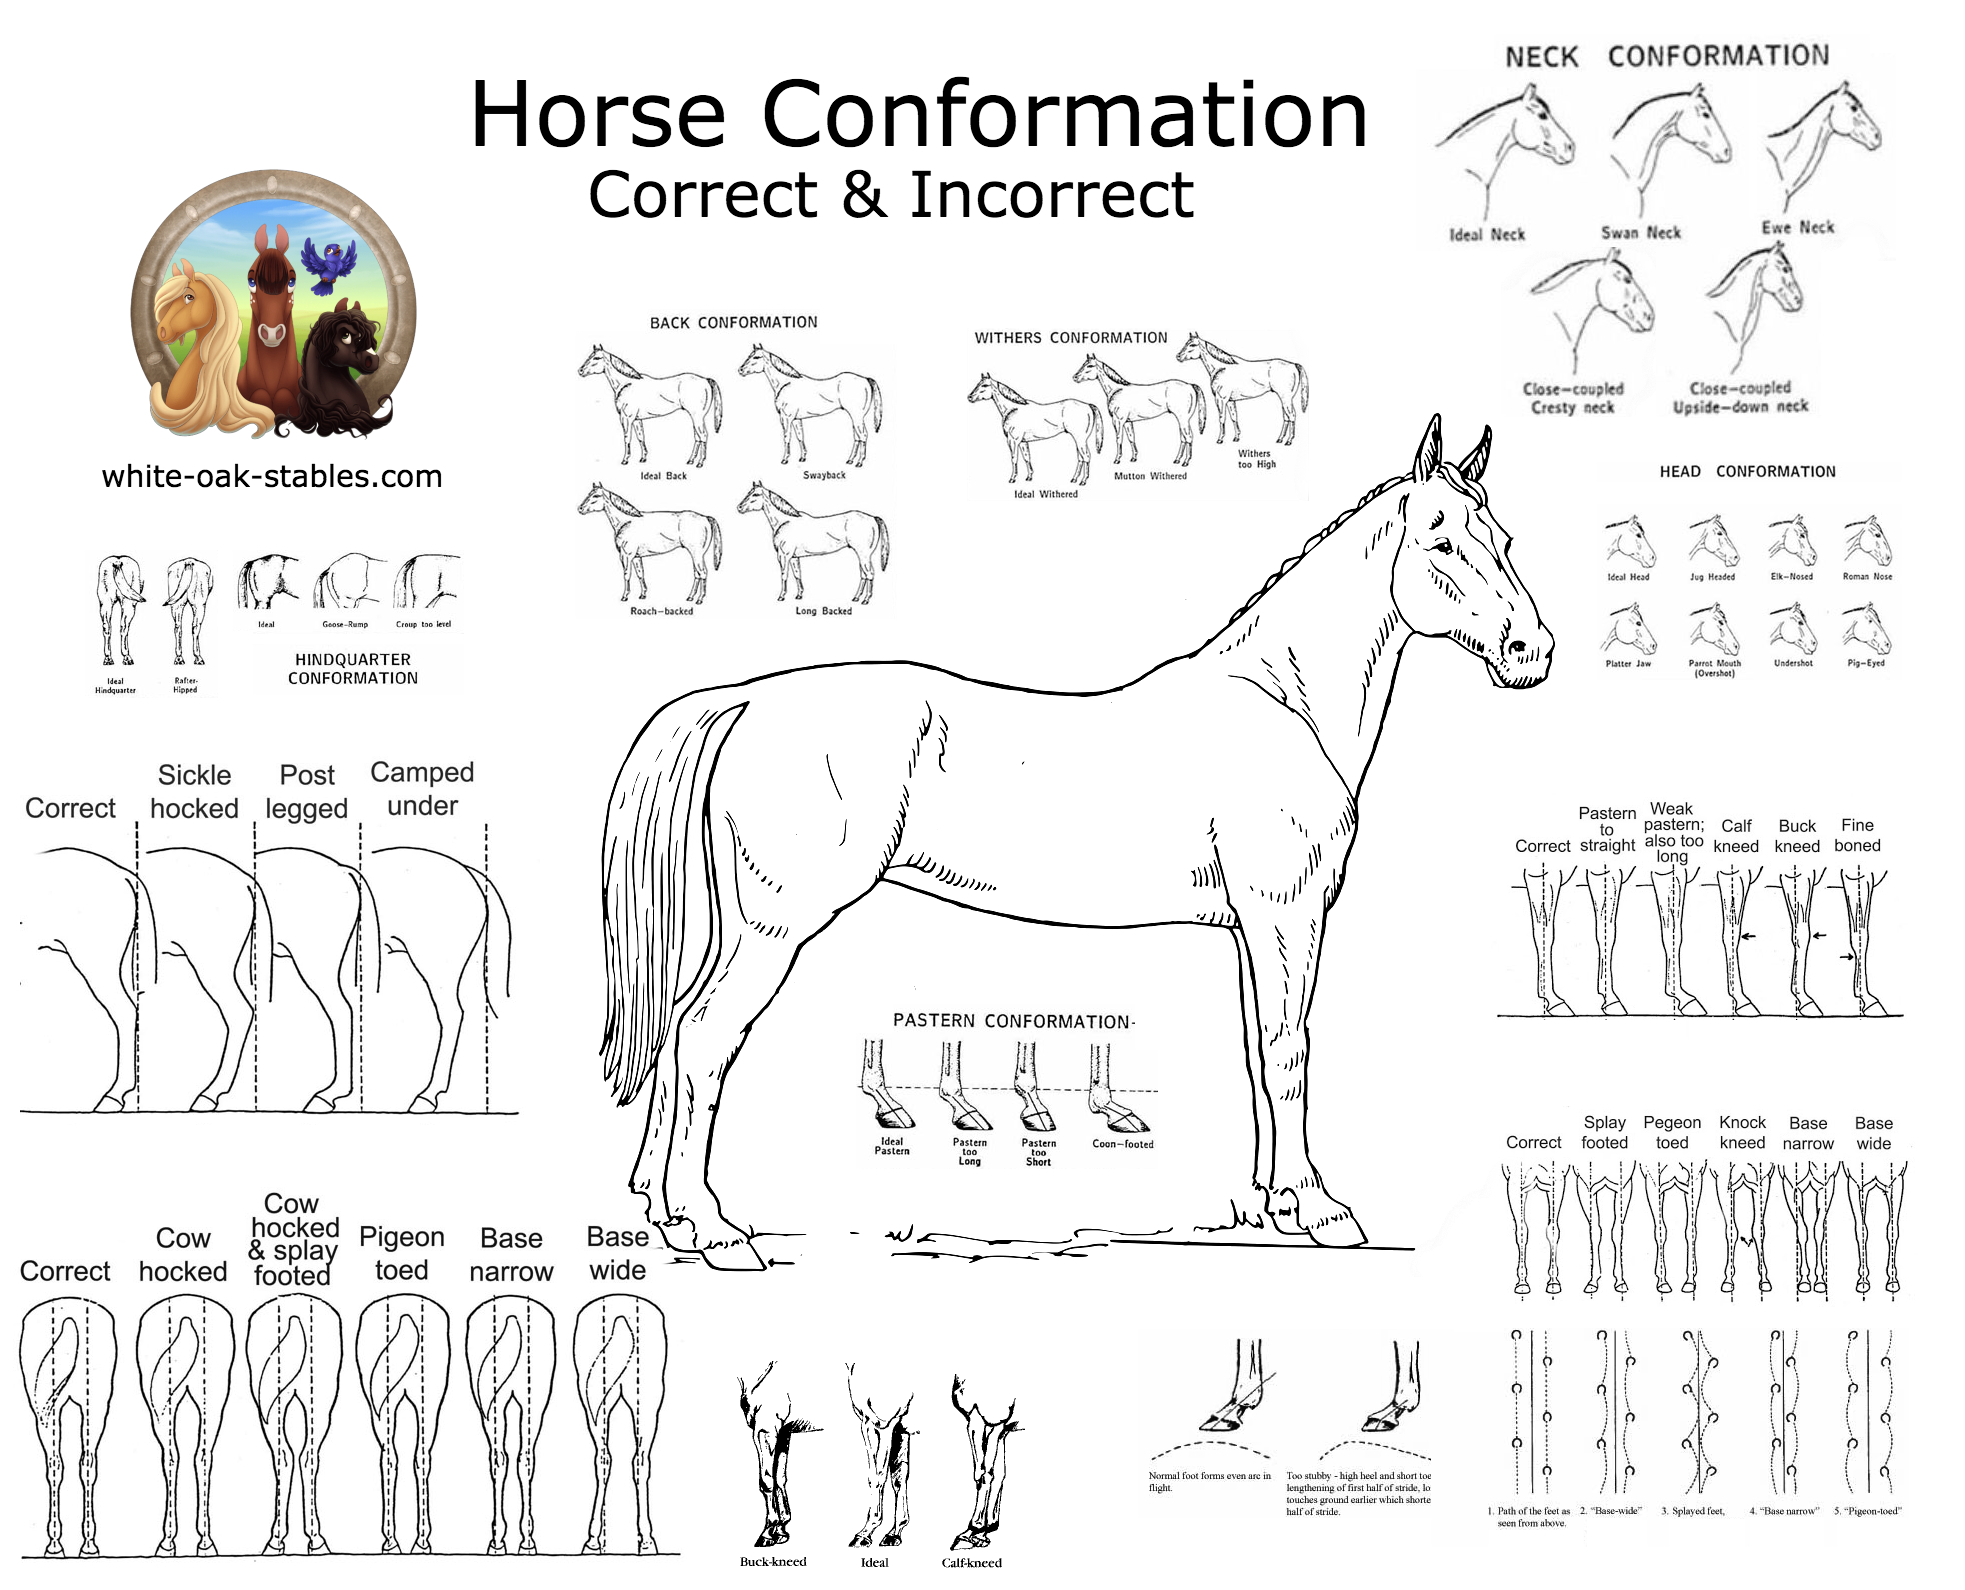 Visual: Horse Conformation